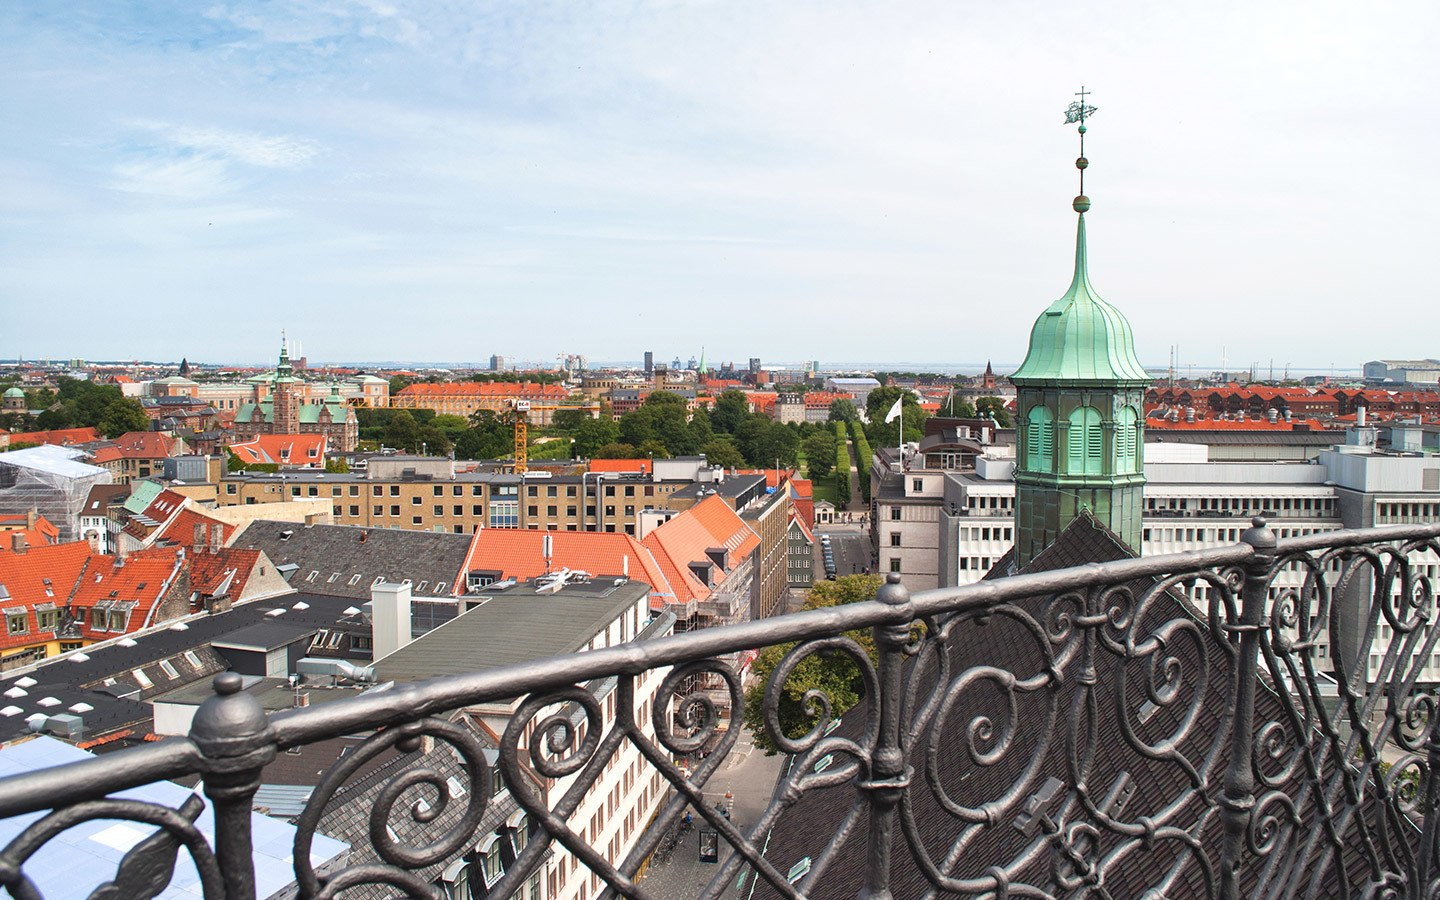 Views across the city from the Rundetårn